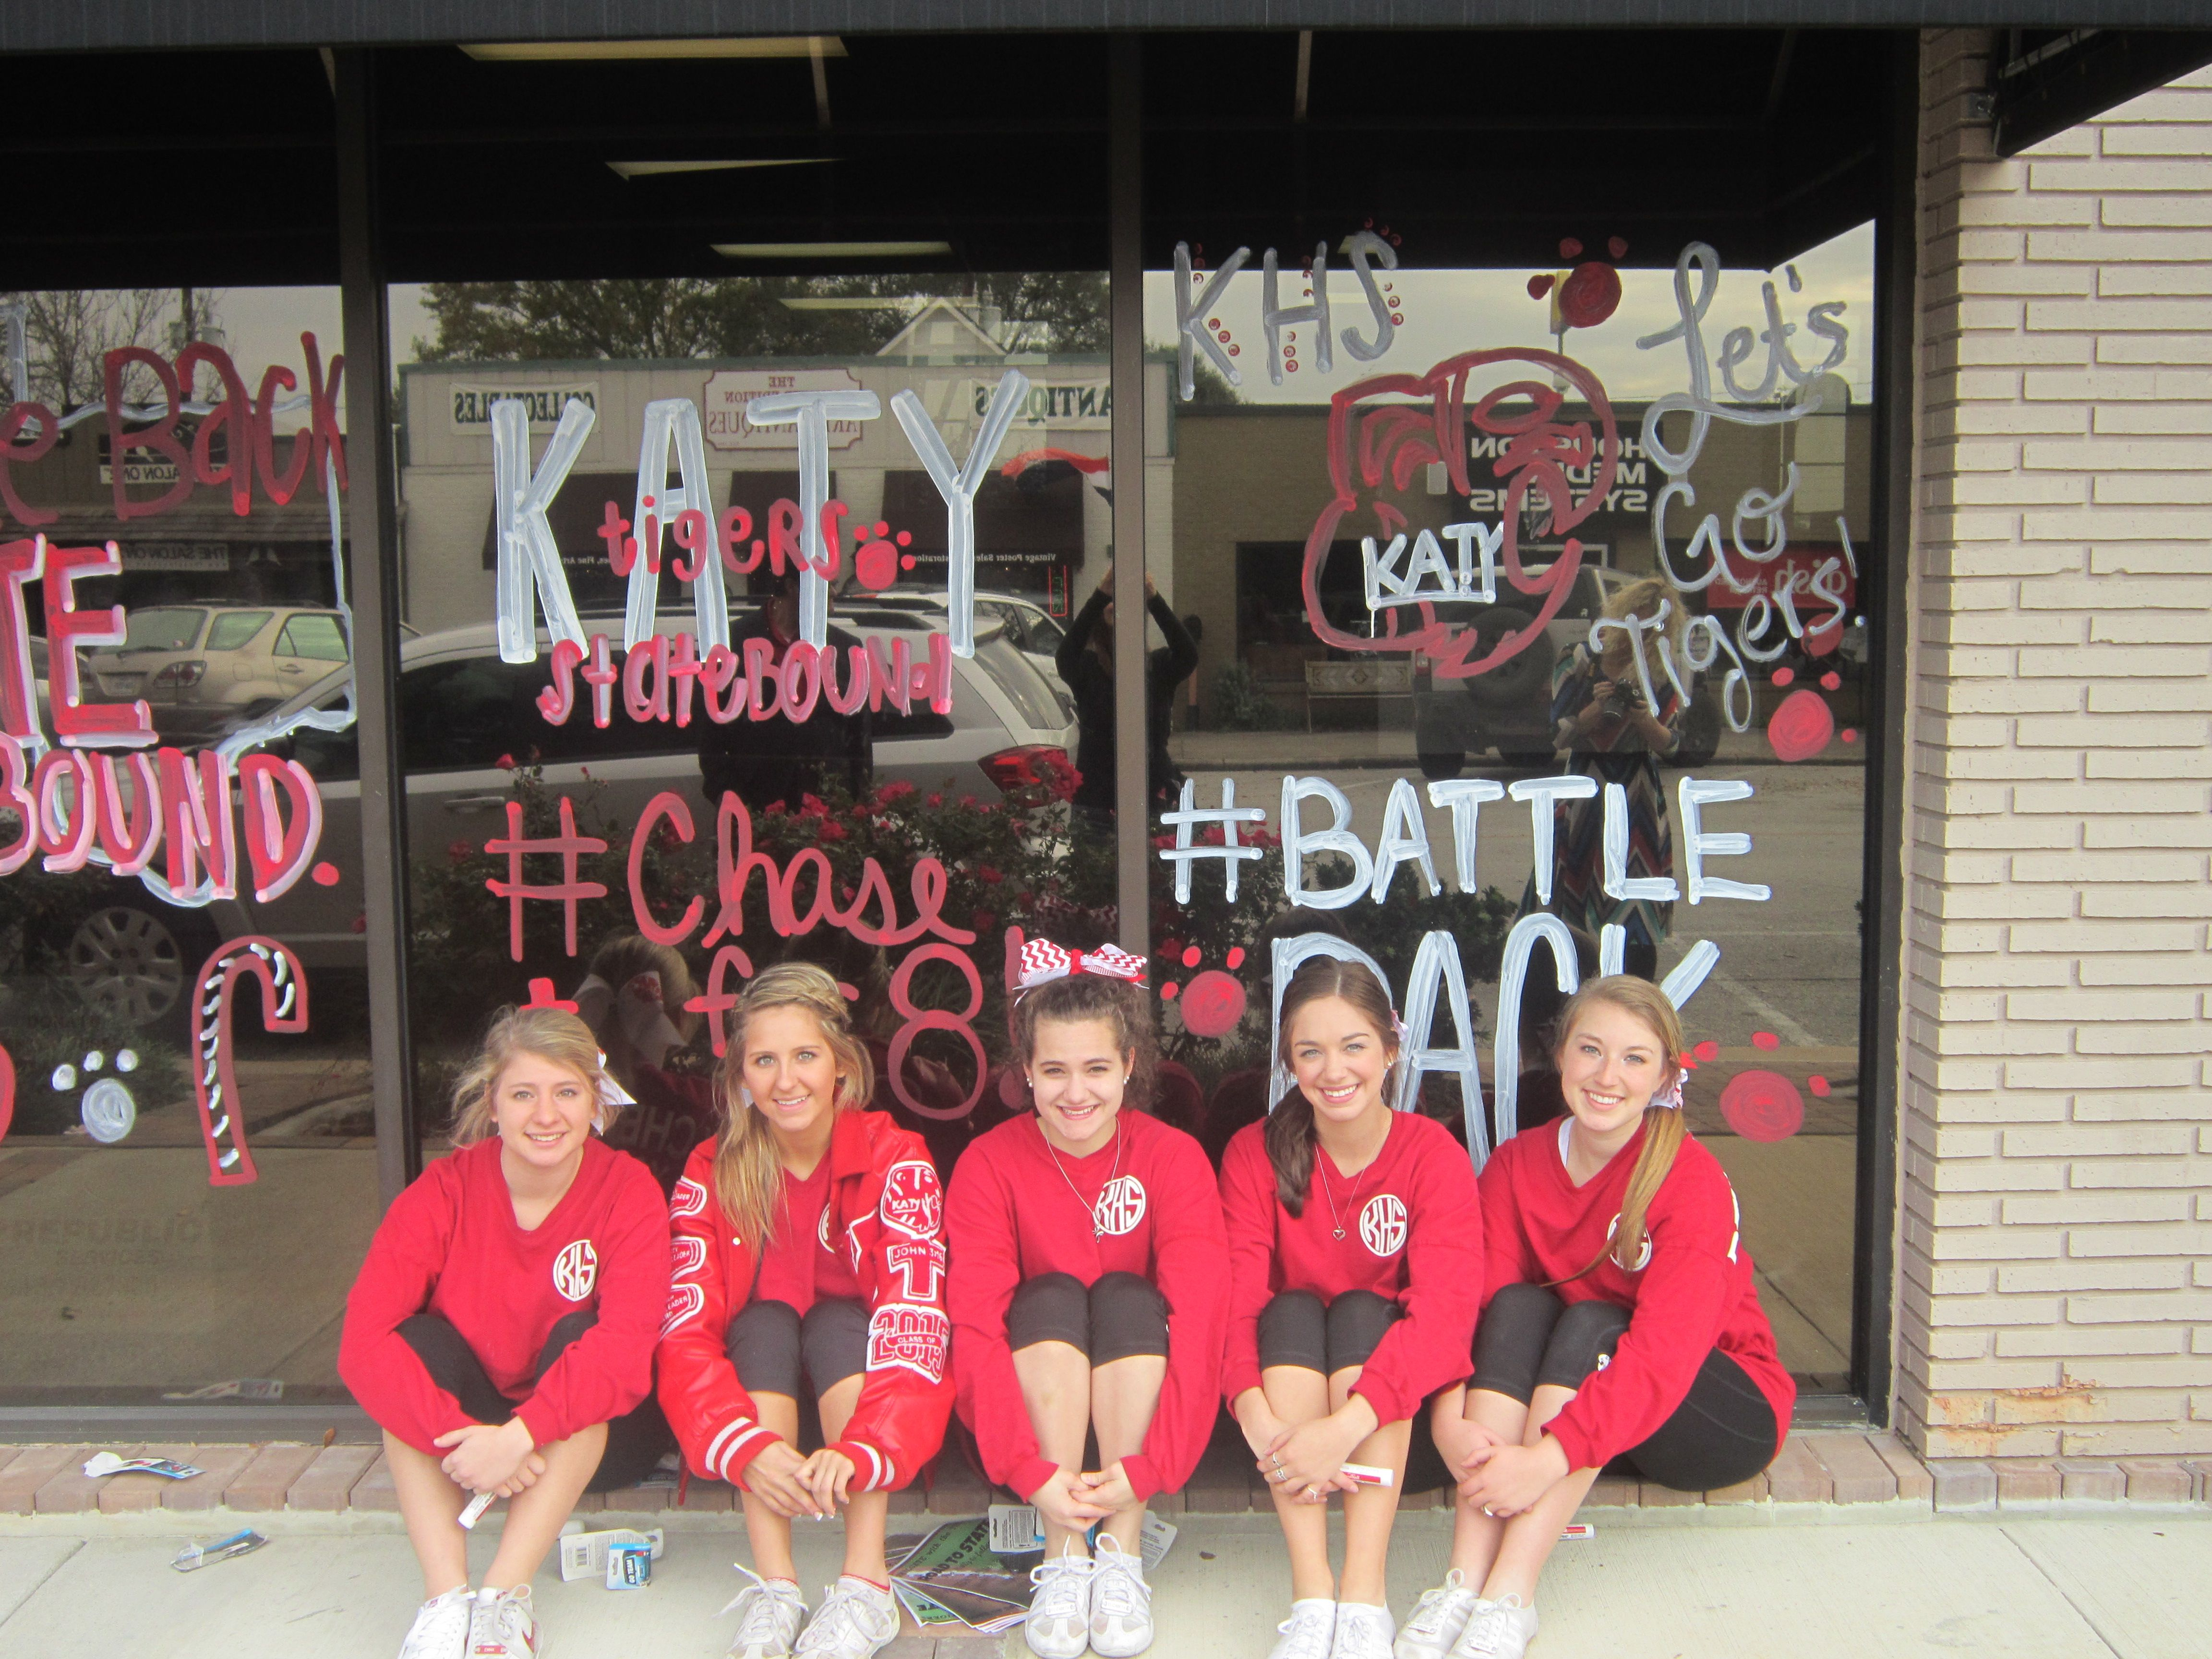 The Katy High School Drill Team And Cheerleaders Paint The Town Red Before The State Championship Football Game For More Katy Texas Championship Football Katy